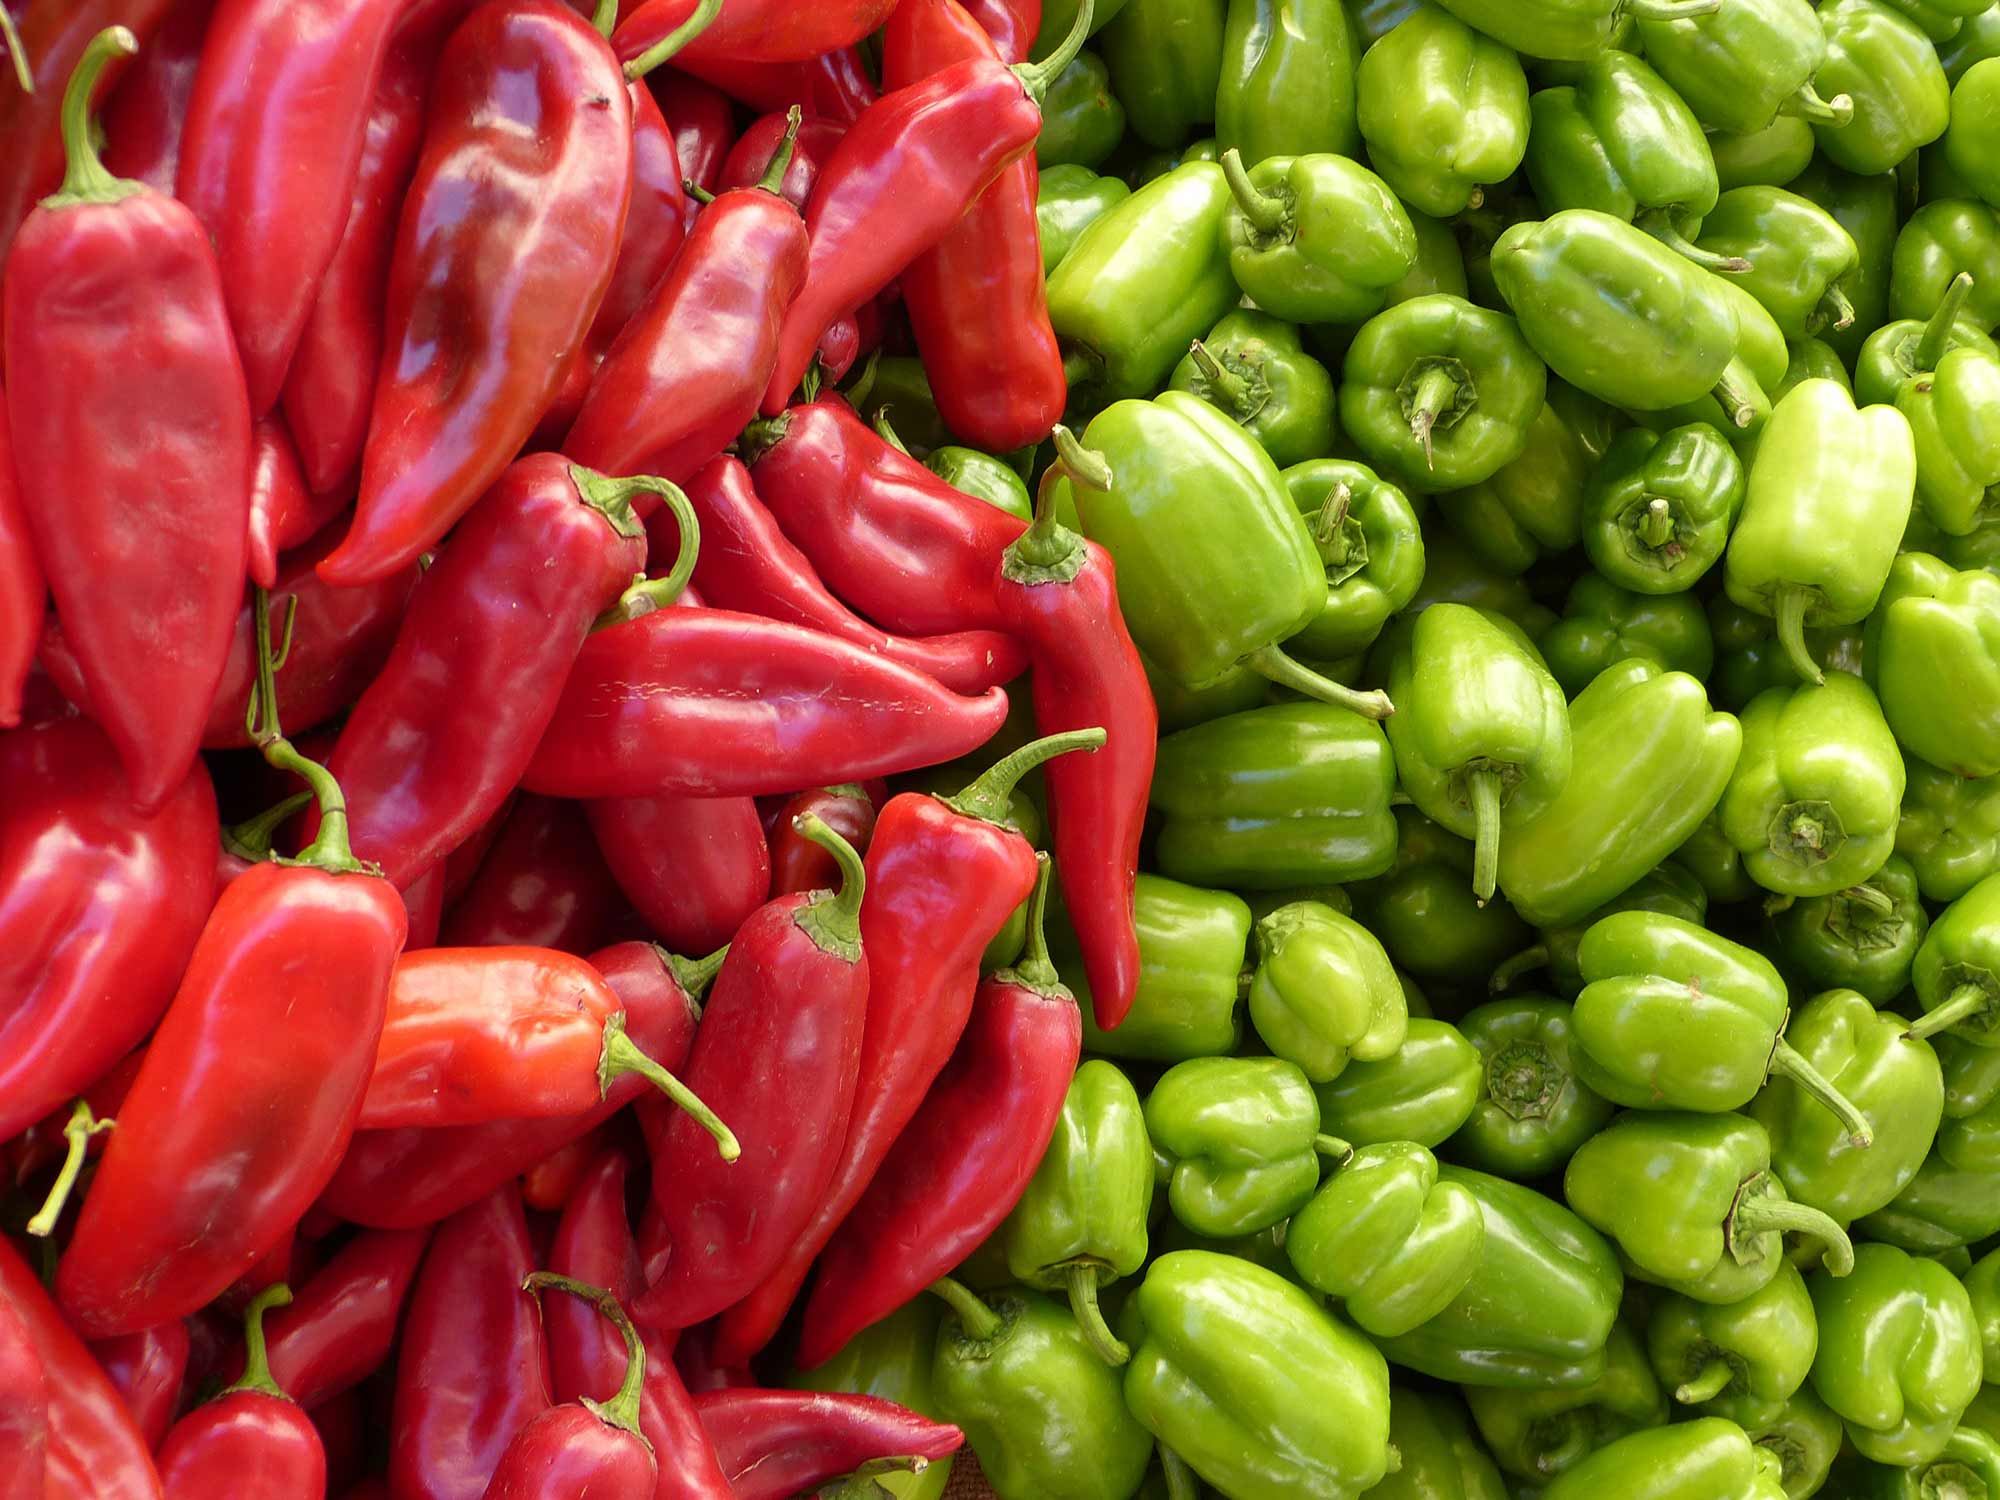 paprika-green-red-vegetables-68170.jpg